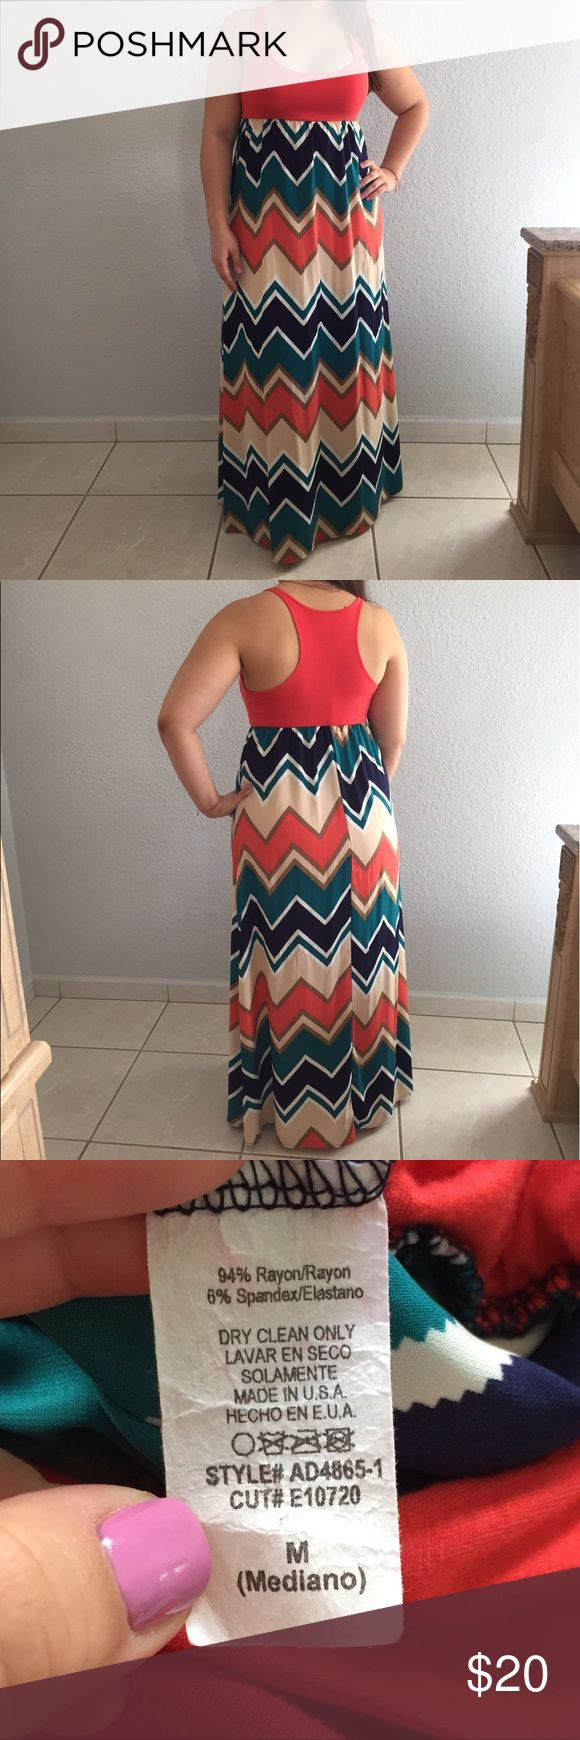 Racerback Coral Maxi Dress This maxi dress is perfect for a casual date night this summer. Pair it up with your favorite wedges. Worn only a few times. In perfect conditions. Top is very stretchy. Dresses Maxi